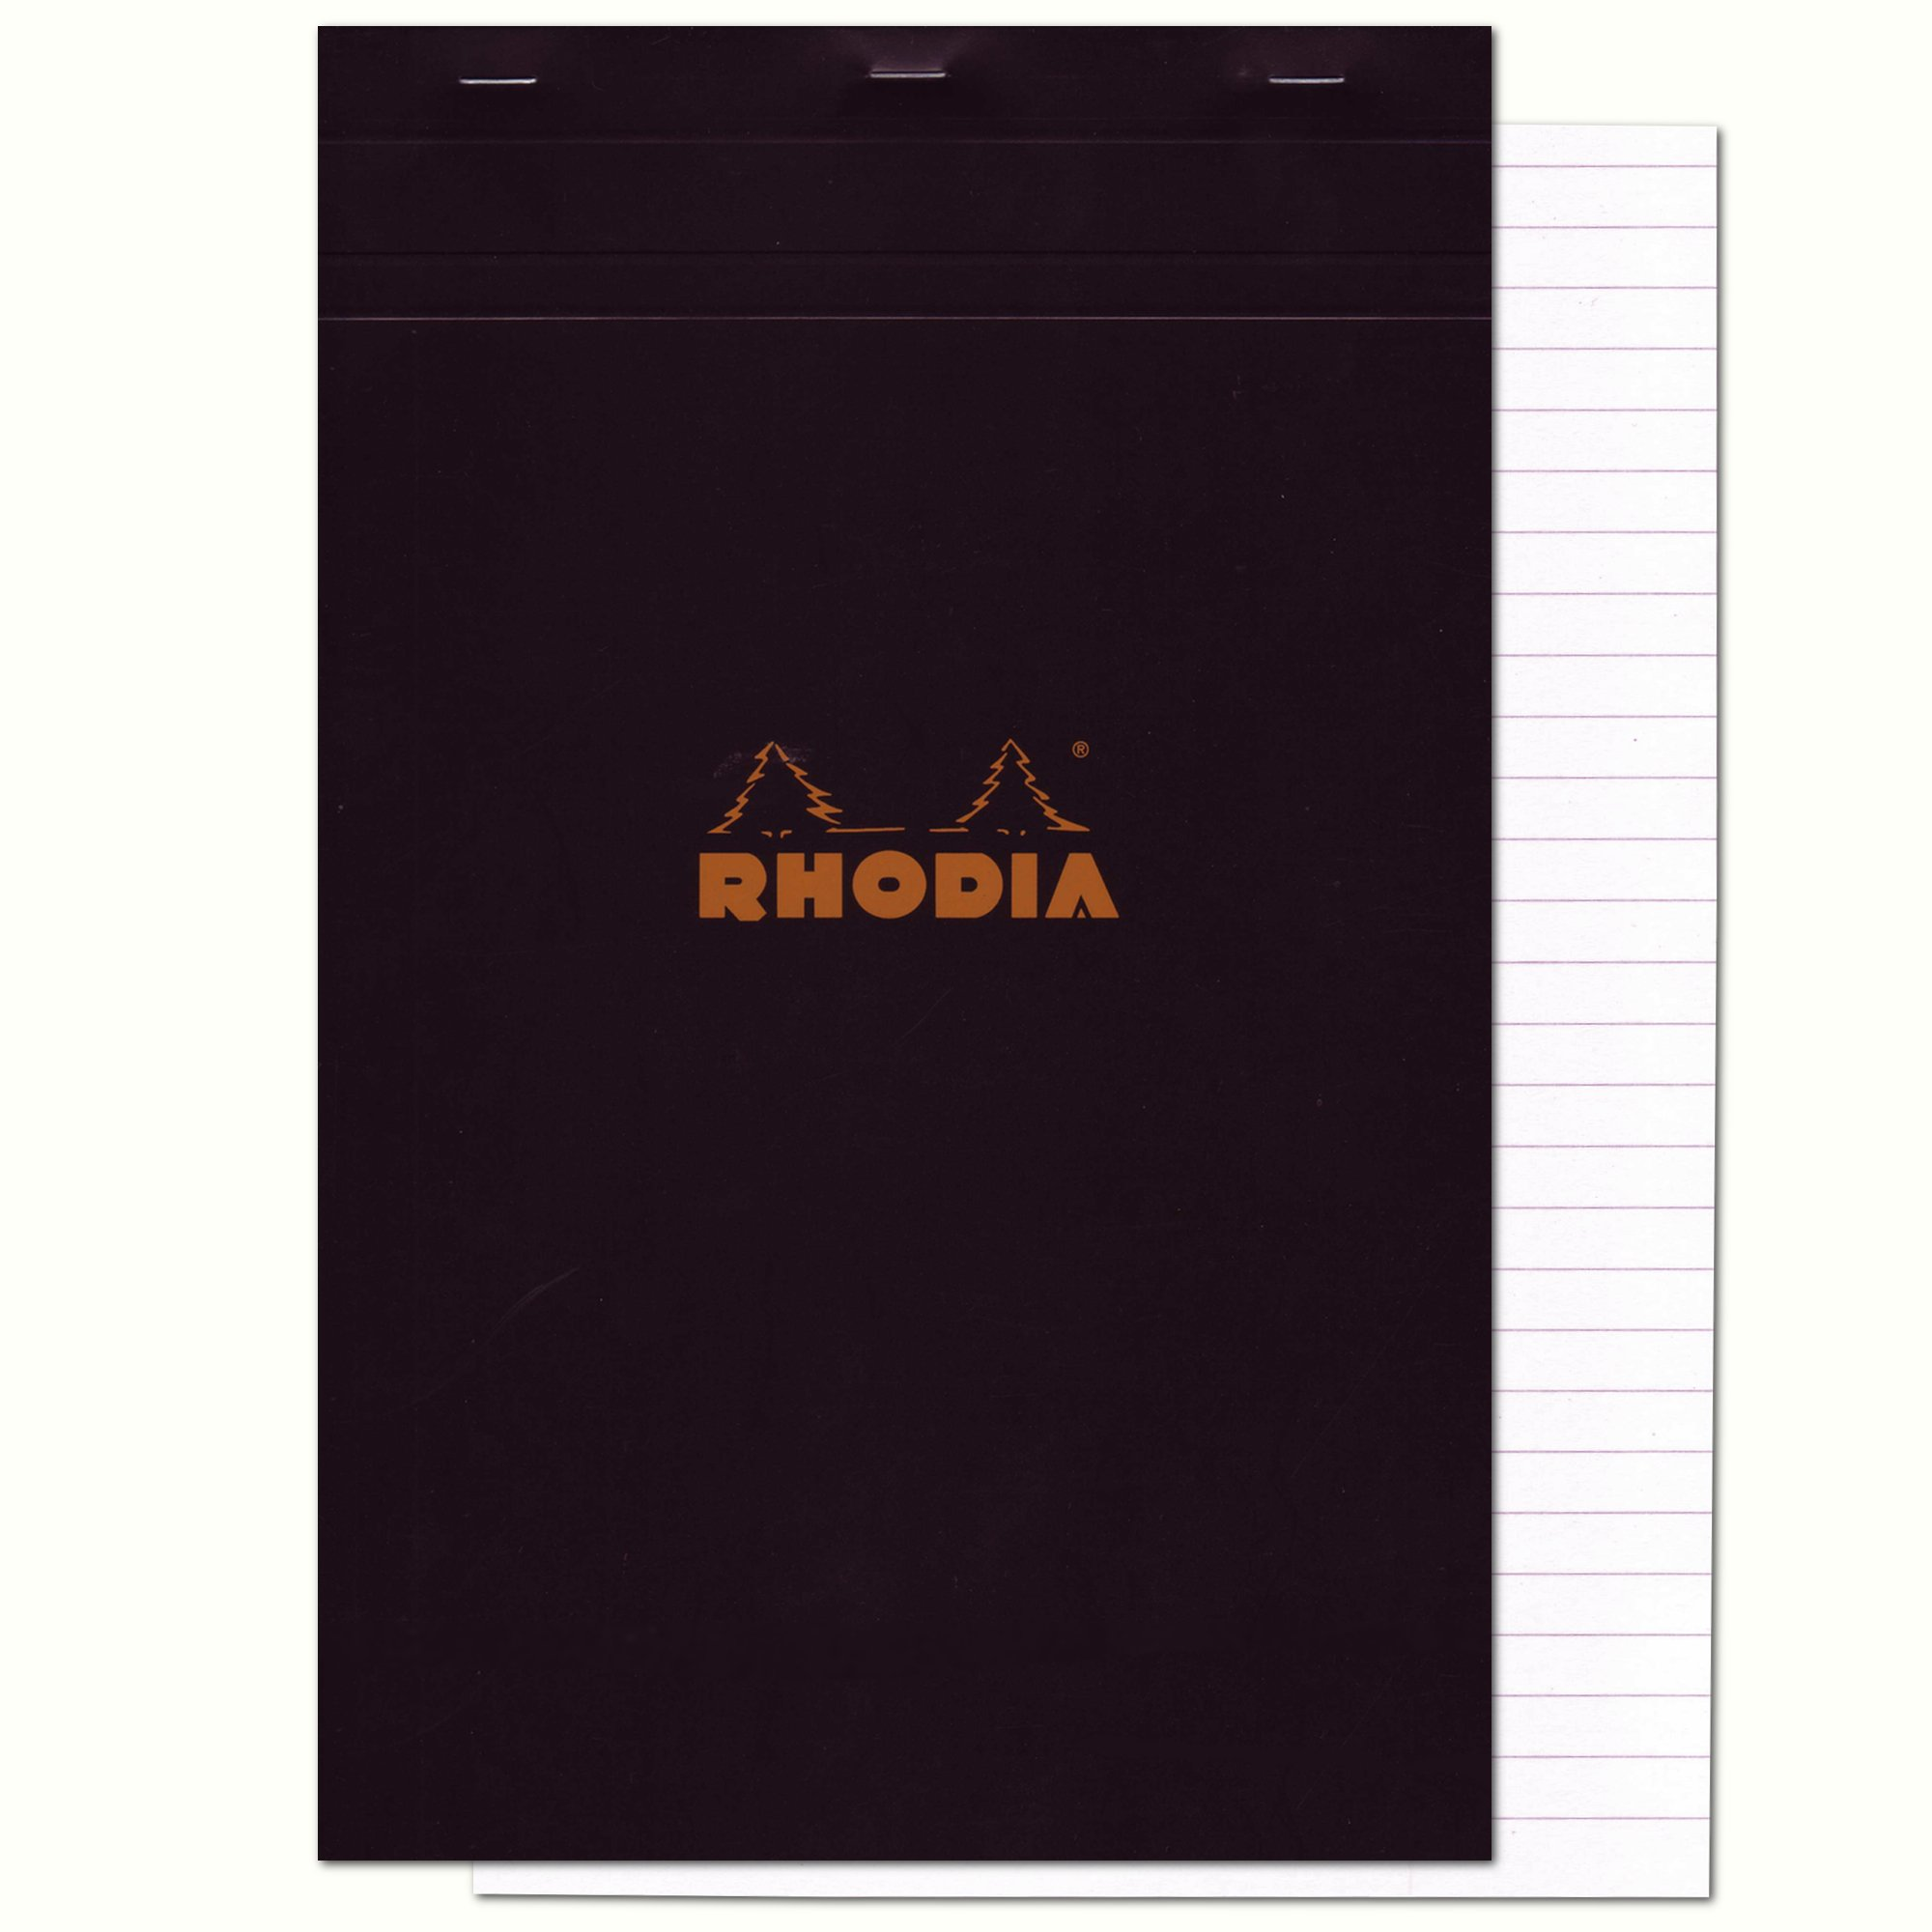 Rhodia Staplebound Pad No.19 - A4+ (8.25 x 12.5 inches), Lined, Black